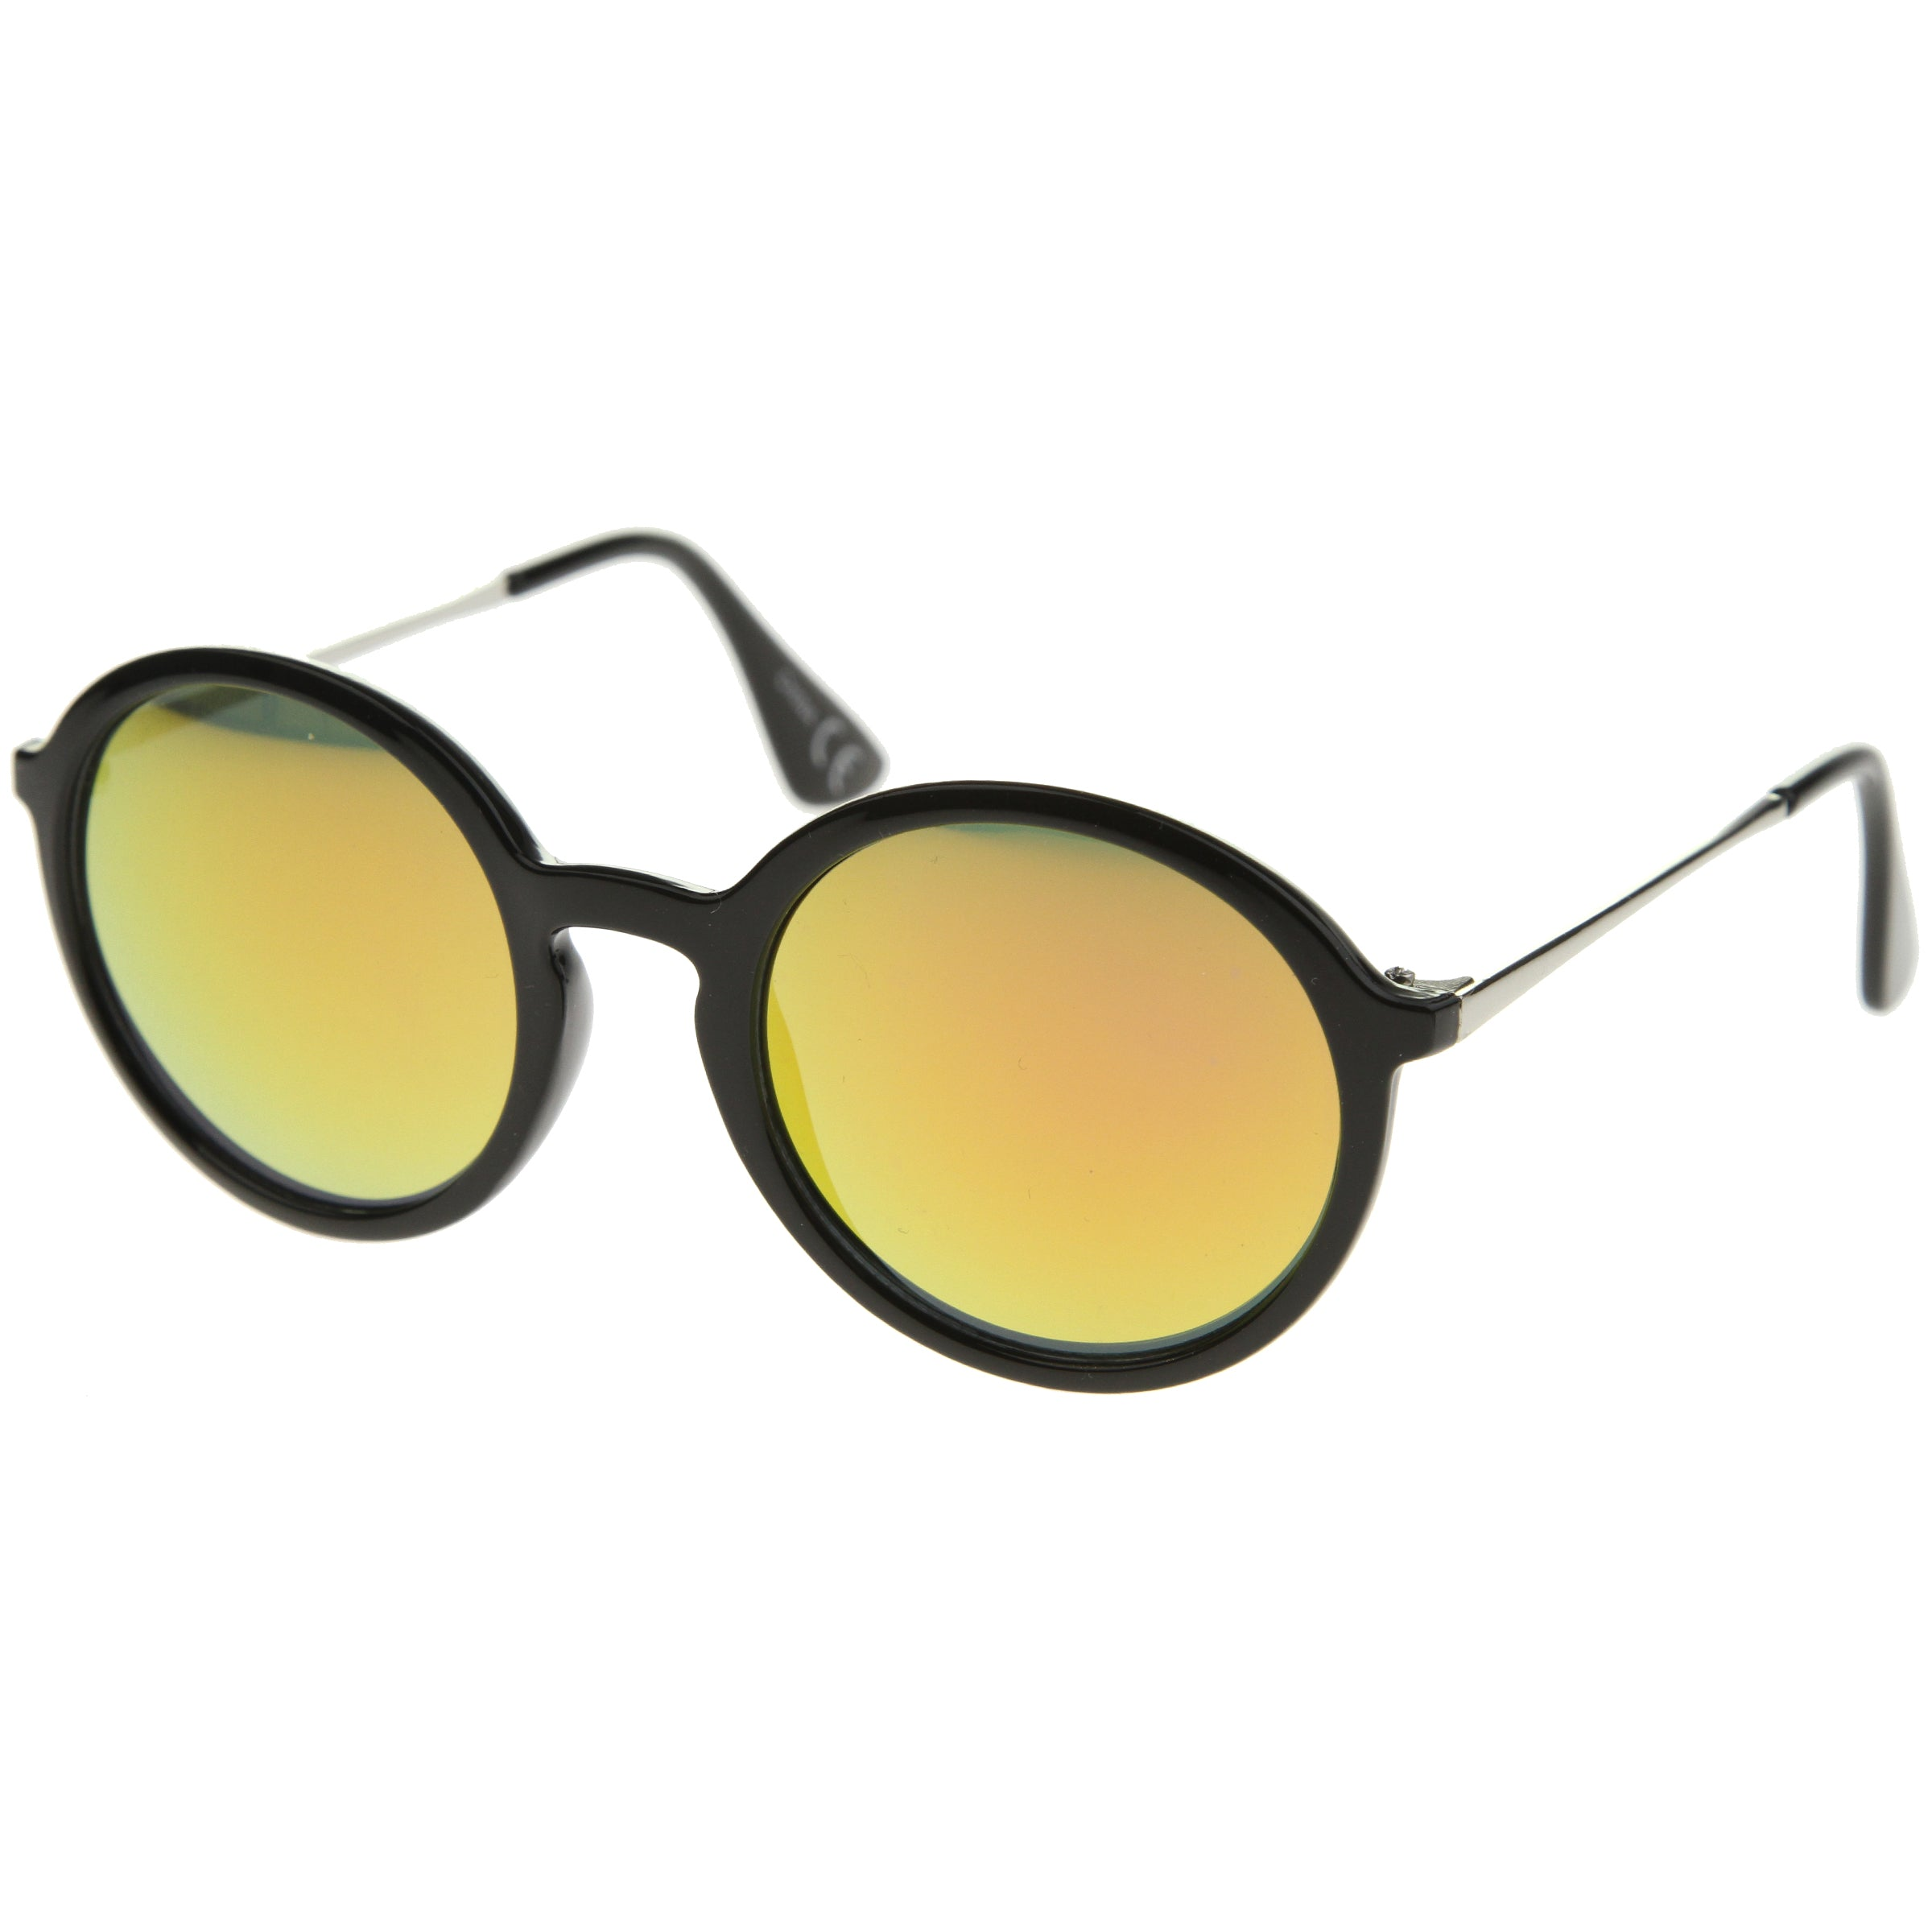 Mid Sized Modern Metal Temple Mirror Lens Round Sunglasses 49mm - sunglass.la - 14